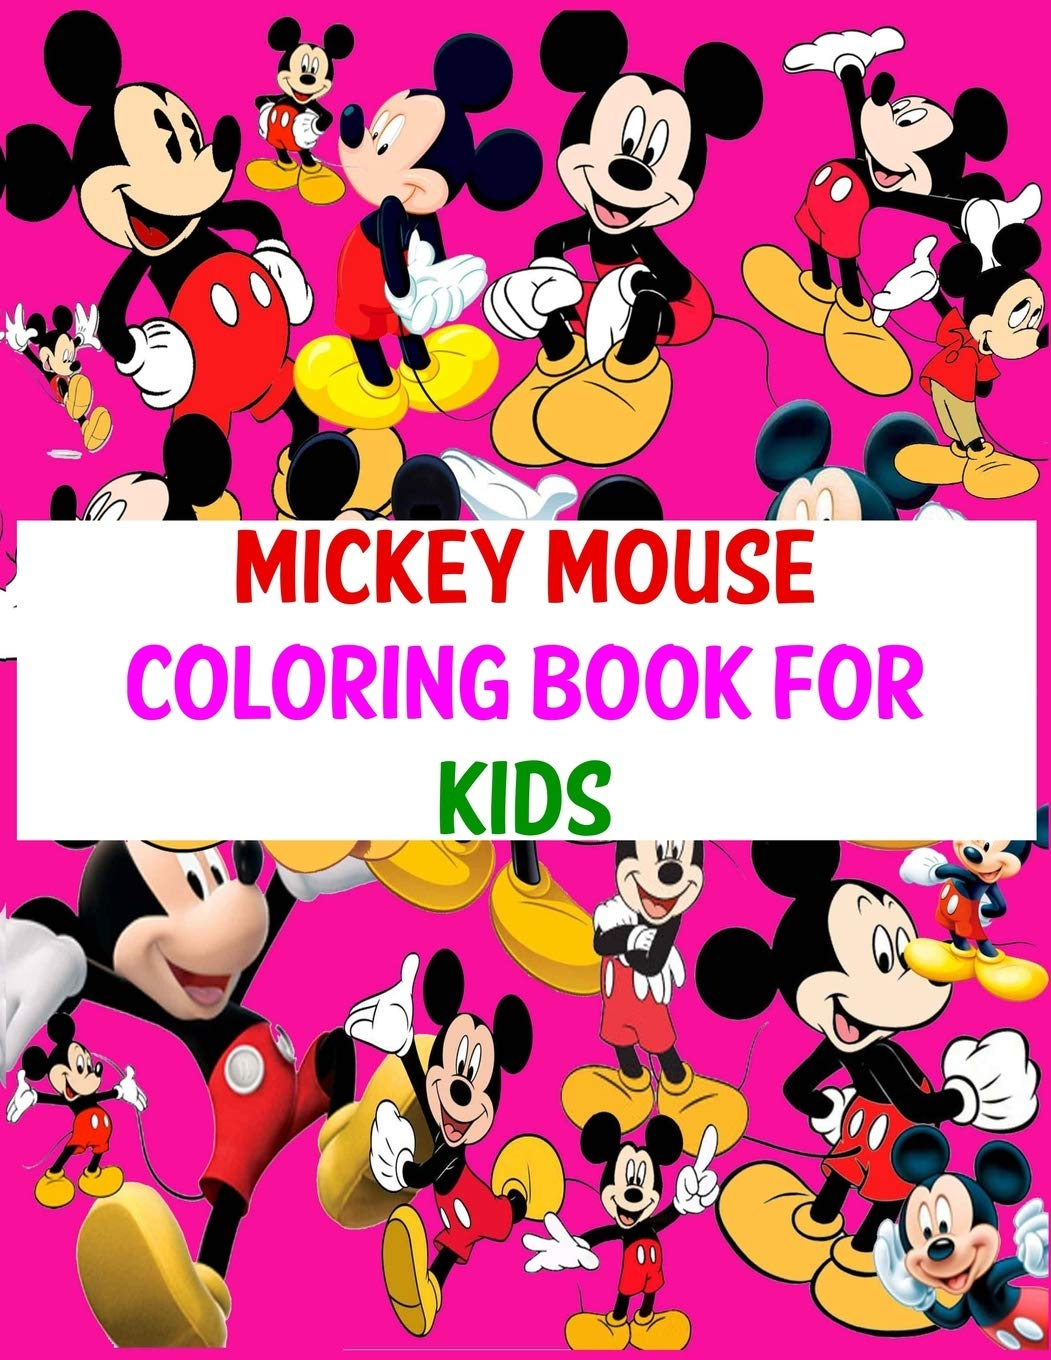 - Mickey Mouse Coloring Book For Kids: Amazing Updated Images With